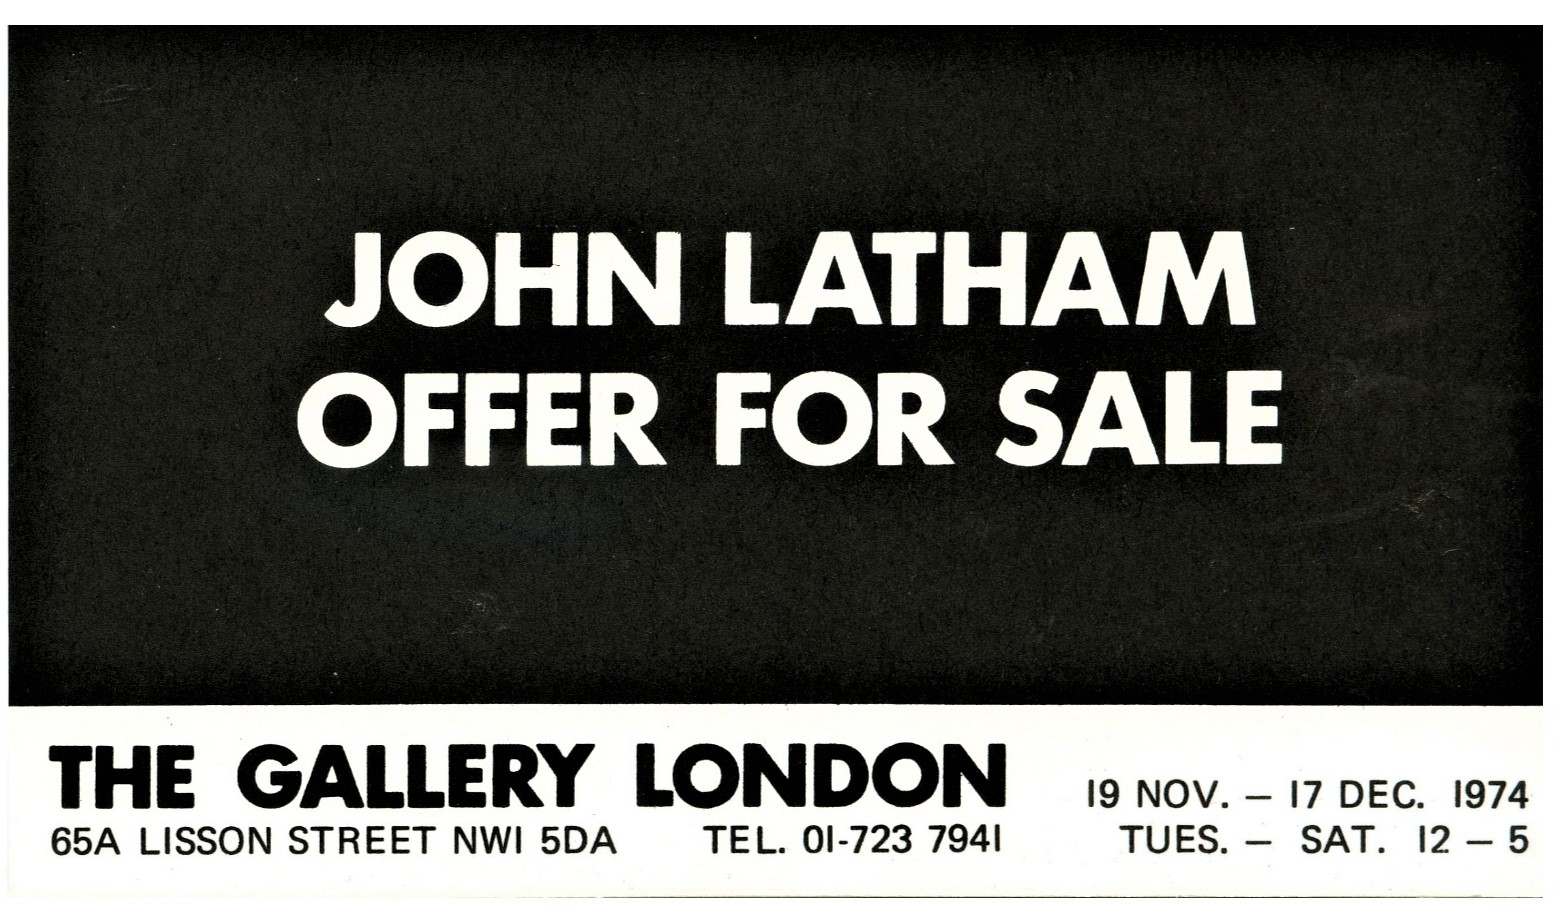 Original showcard for John Latham 'Offer for Sale' presented at The Gallery in 1974 (OFFER FOR SALE 5)